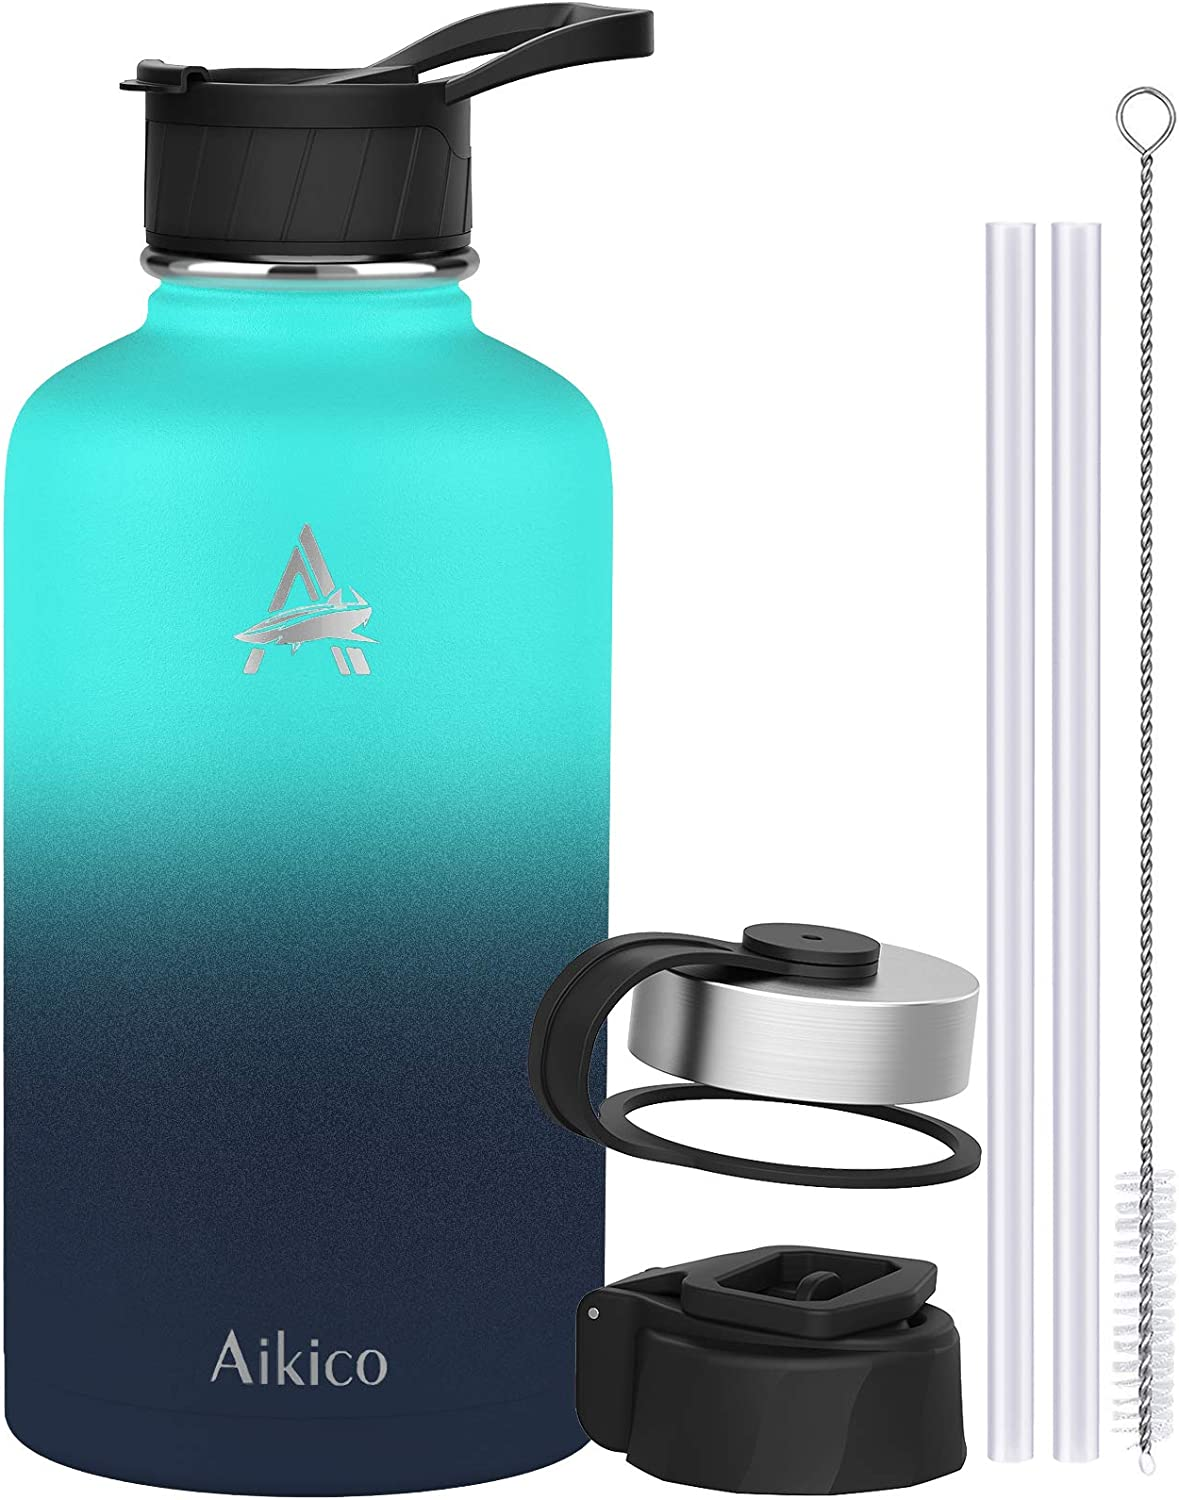 Stainless Steel Water Bottle with Straw Lid, 64oz Vacuum Insulated Sports Water Bottle, Wide Mouth Thermos Mug with Wide Handle Straw Lid and Cleaning Brush, Ocean